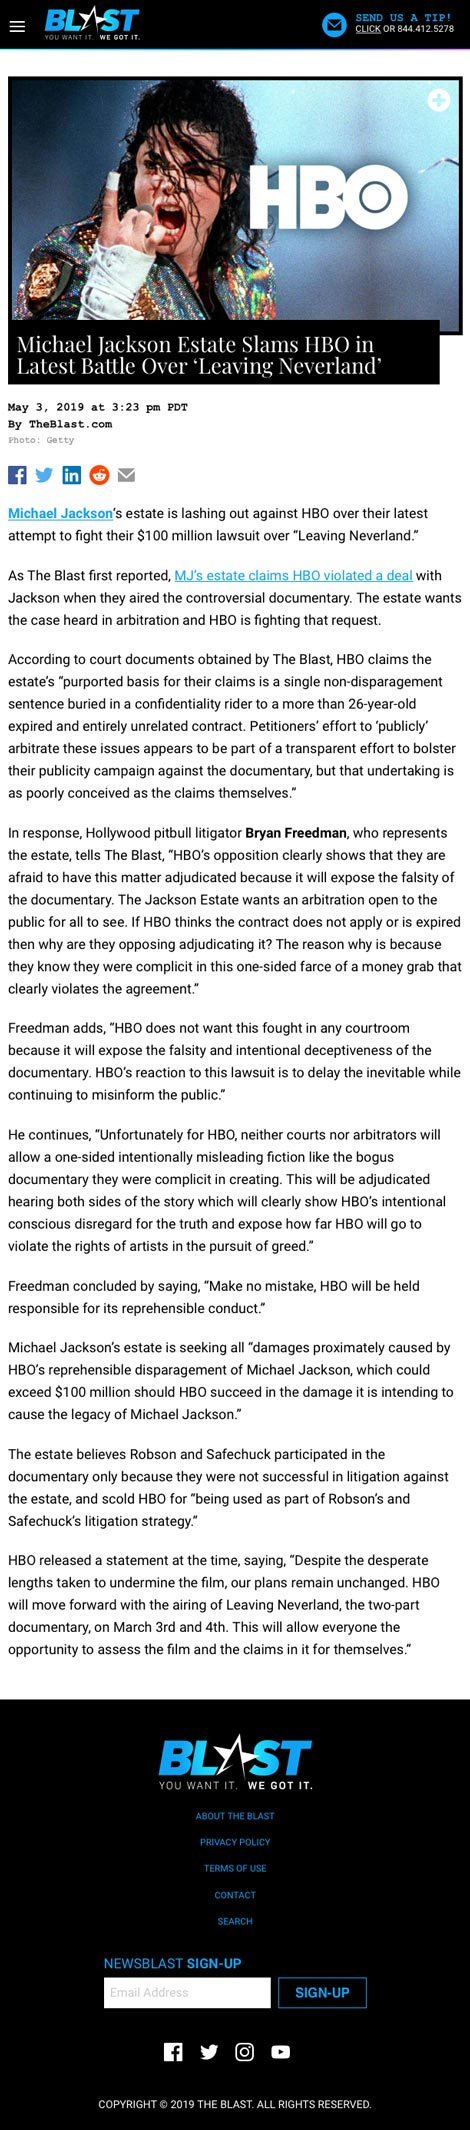 Michael Jackson Estate Slams HBO in Latest Battle Over 'Leaving Neverland' - article by TheBlast.com